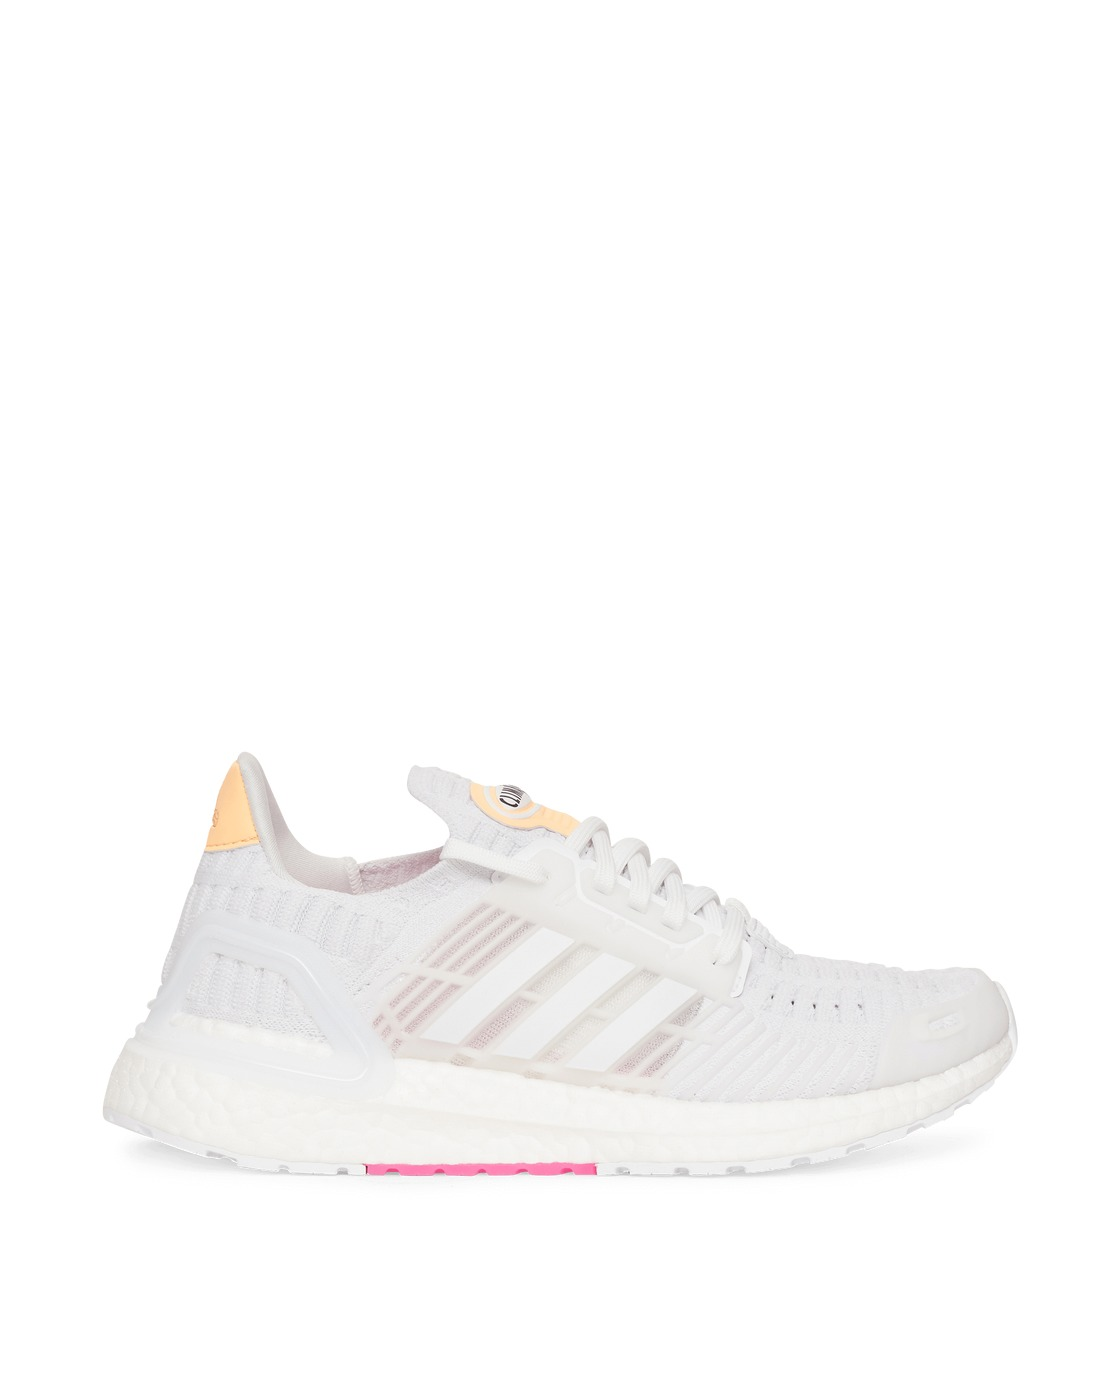 Adidas Originals Ultraboost Dna Cc 1 Sneakers Ftwr White/Acid Orange